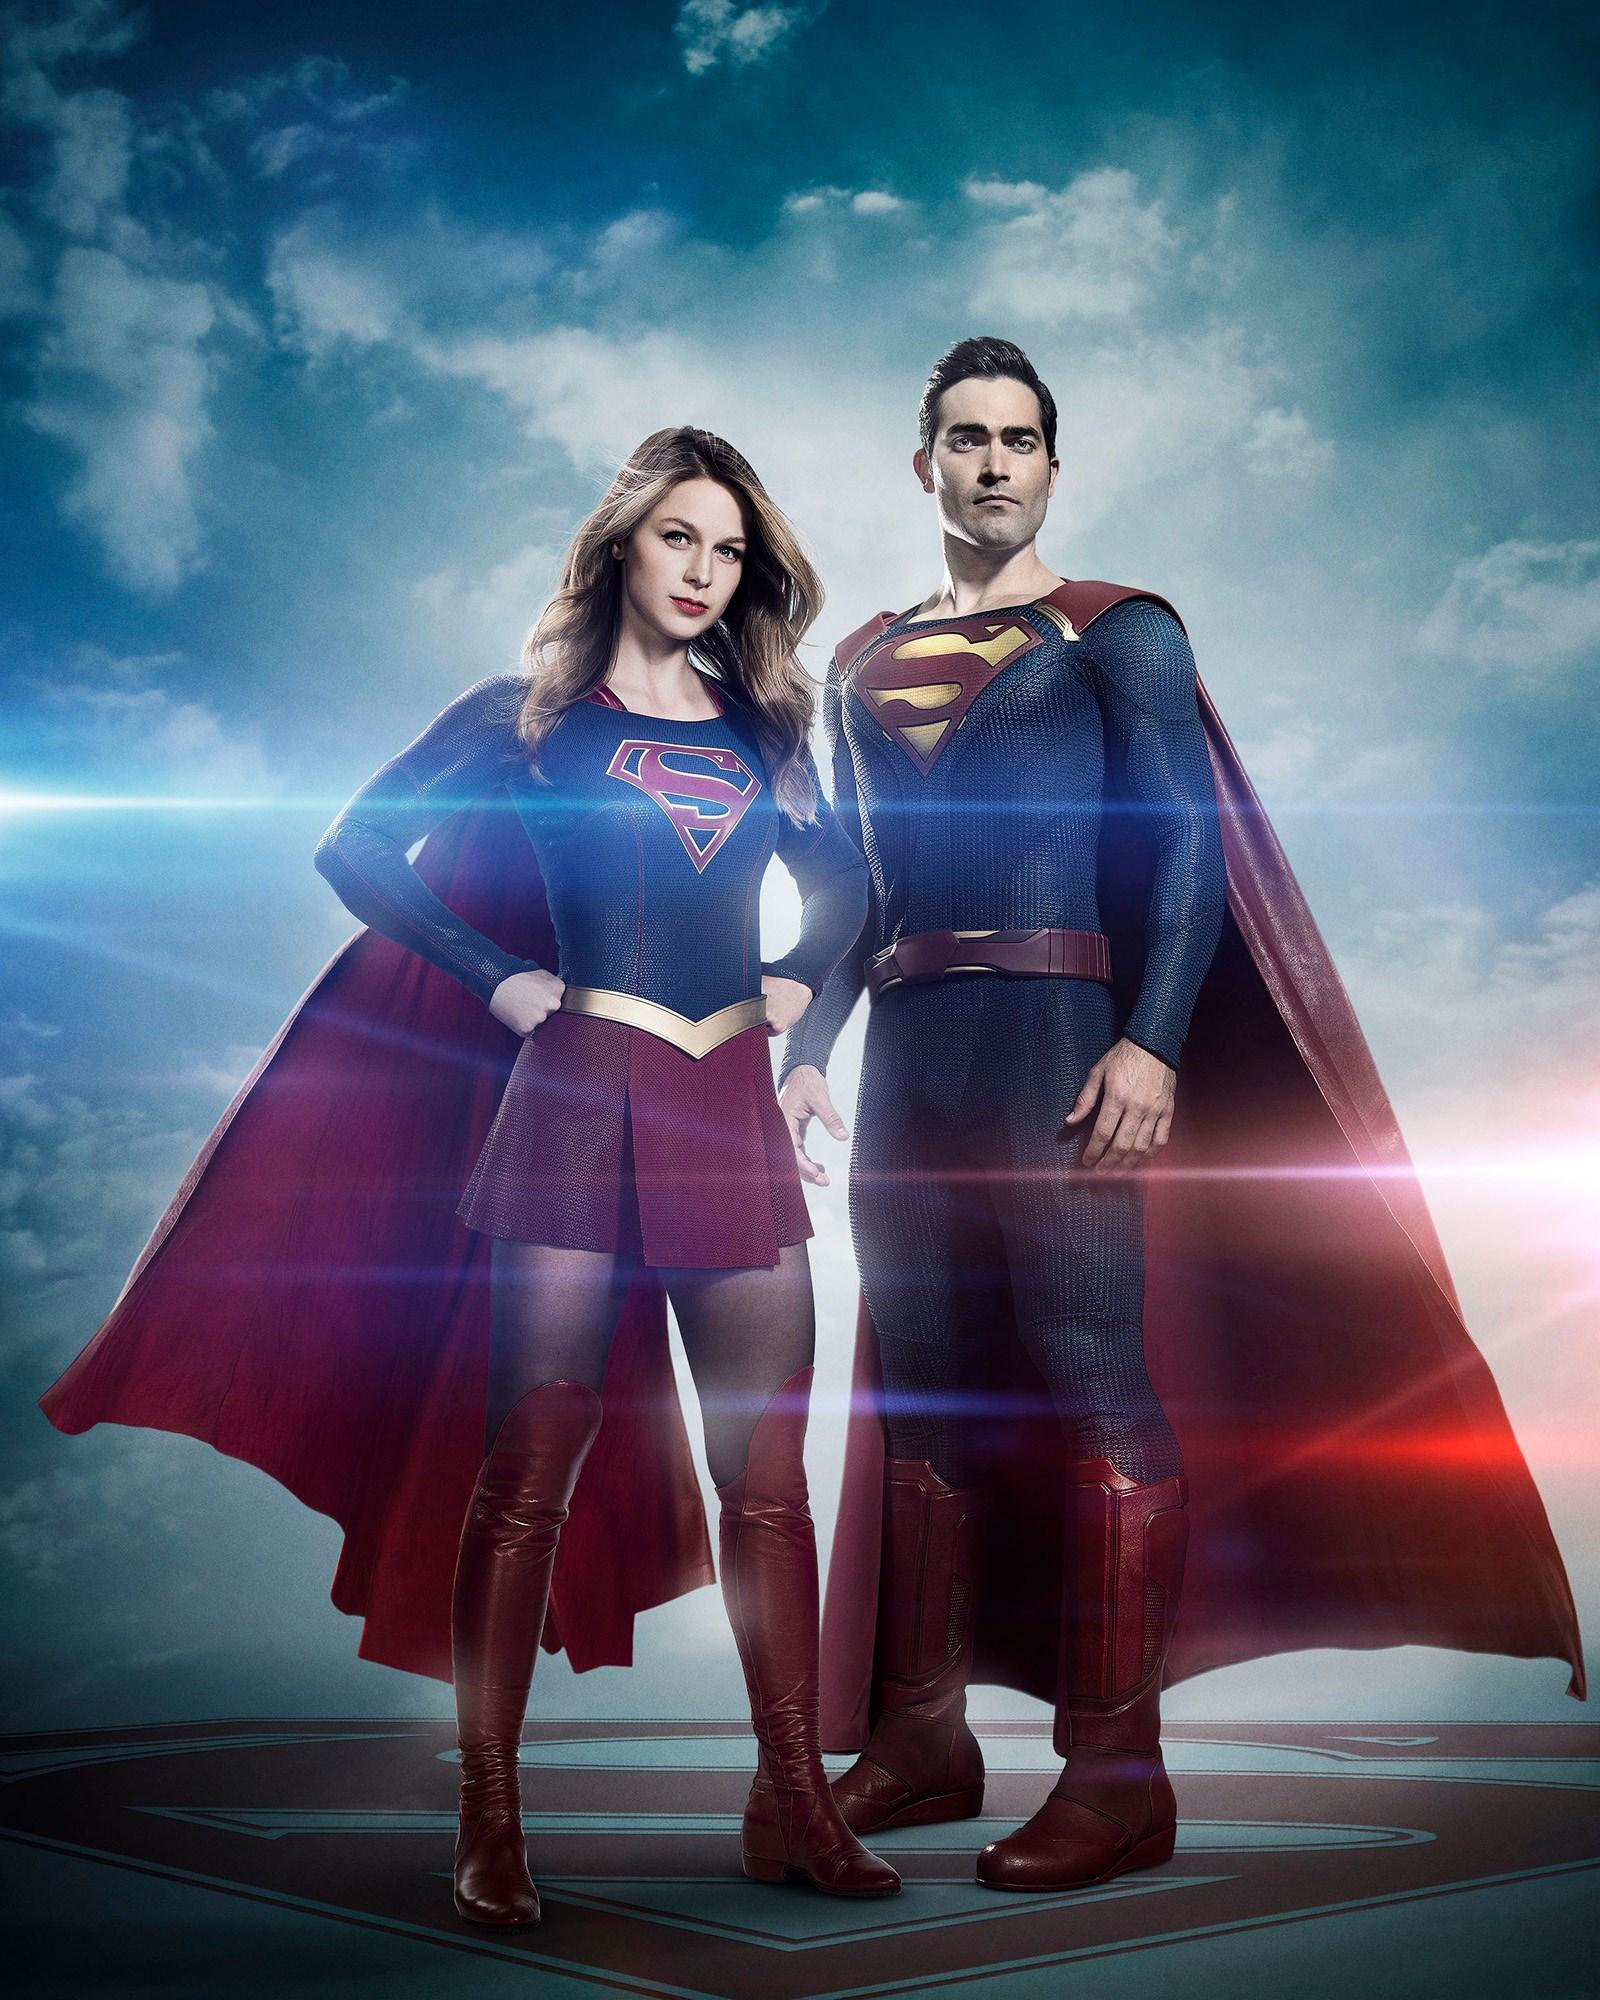 Melissa Benoist as Supergirl and Tyler Hoechlin as Superman